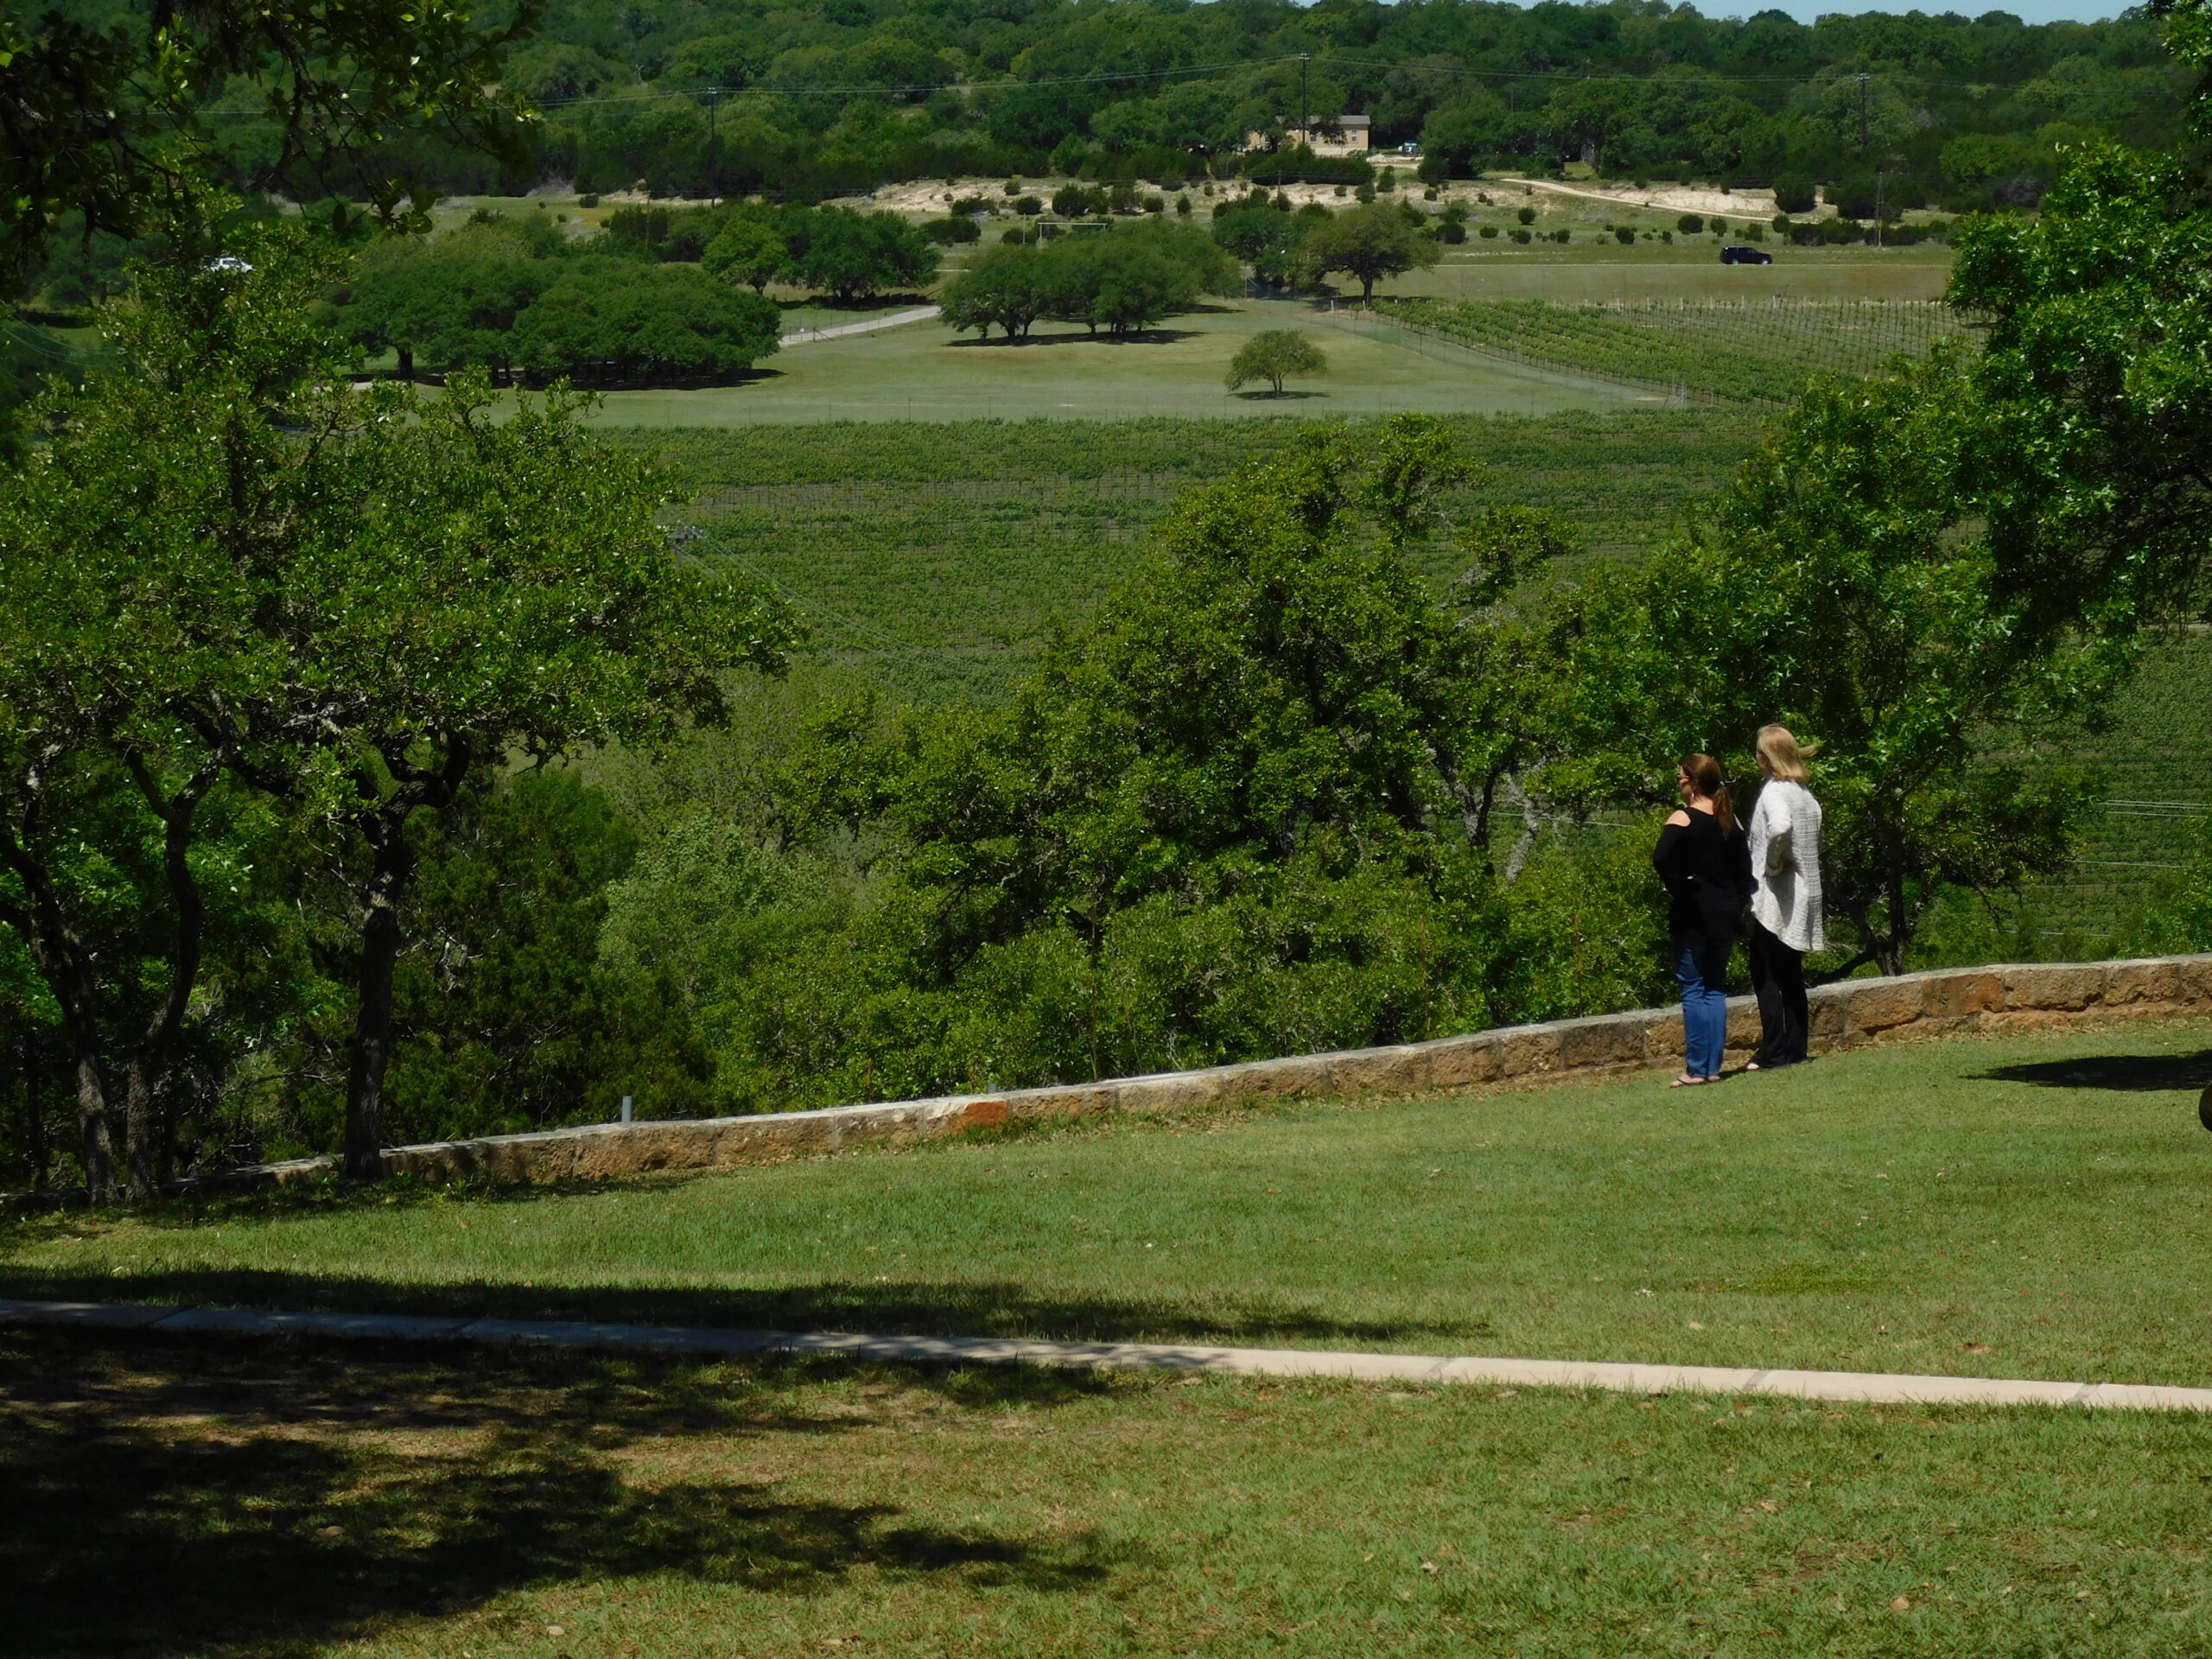 Strolling through Texas wine Hill Country